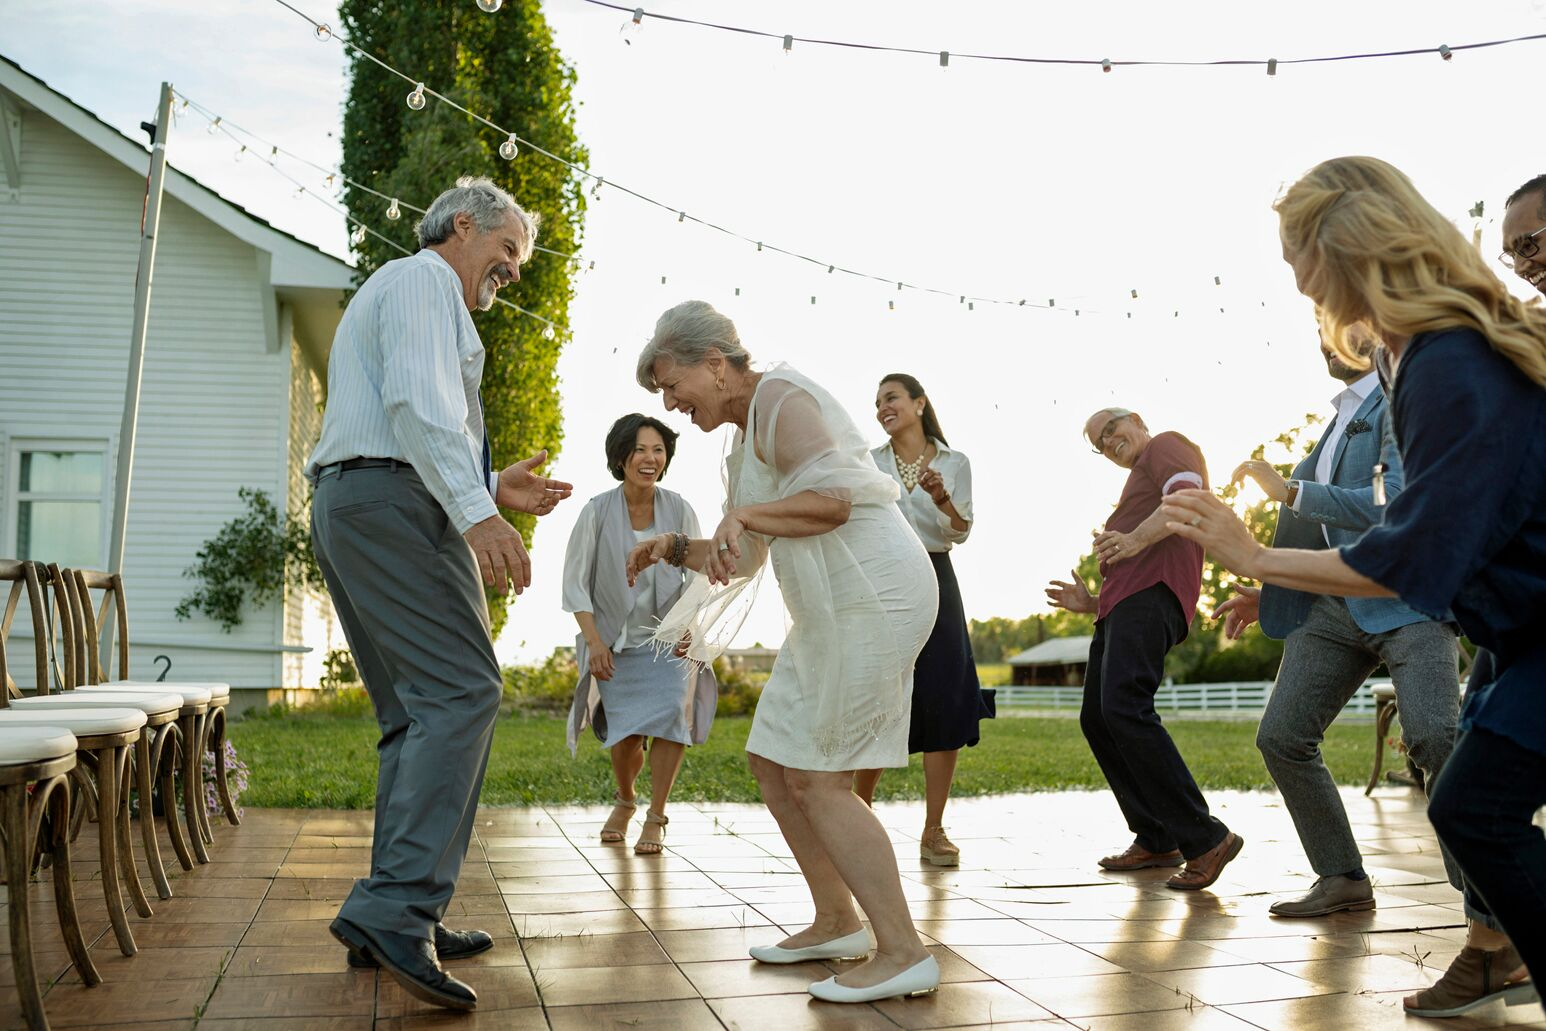 Elderly people dance